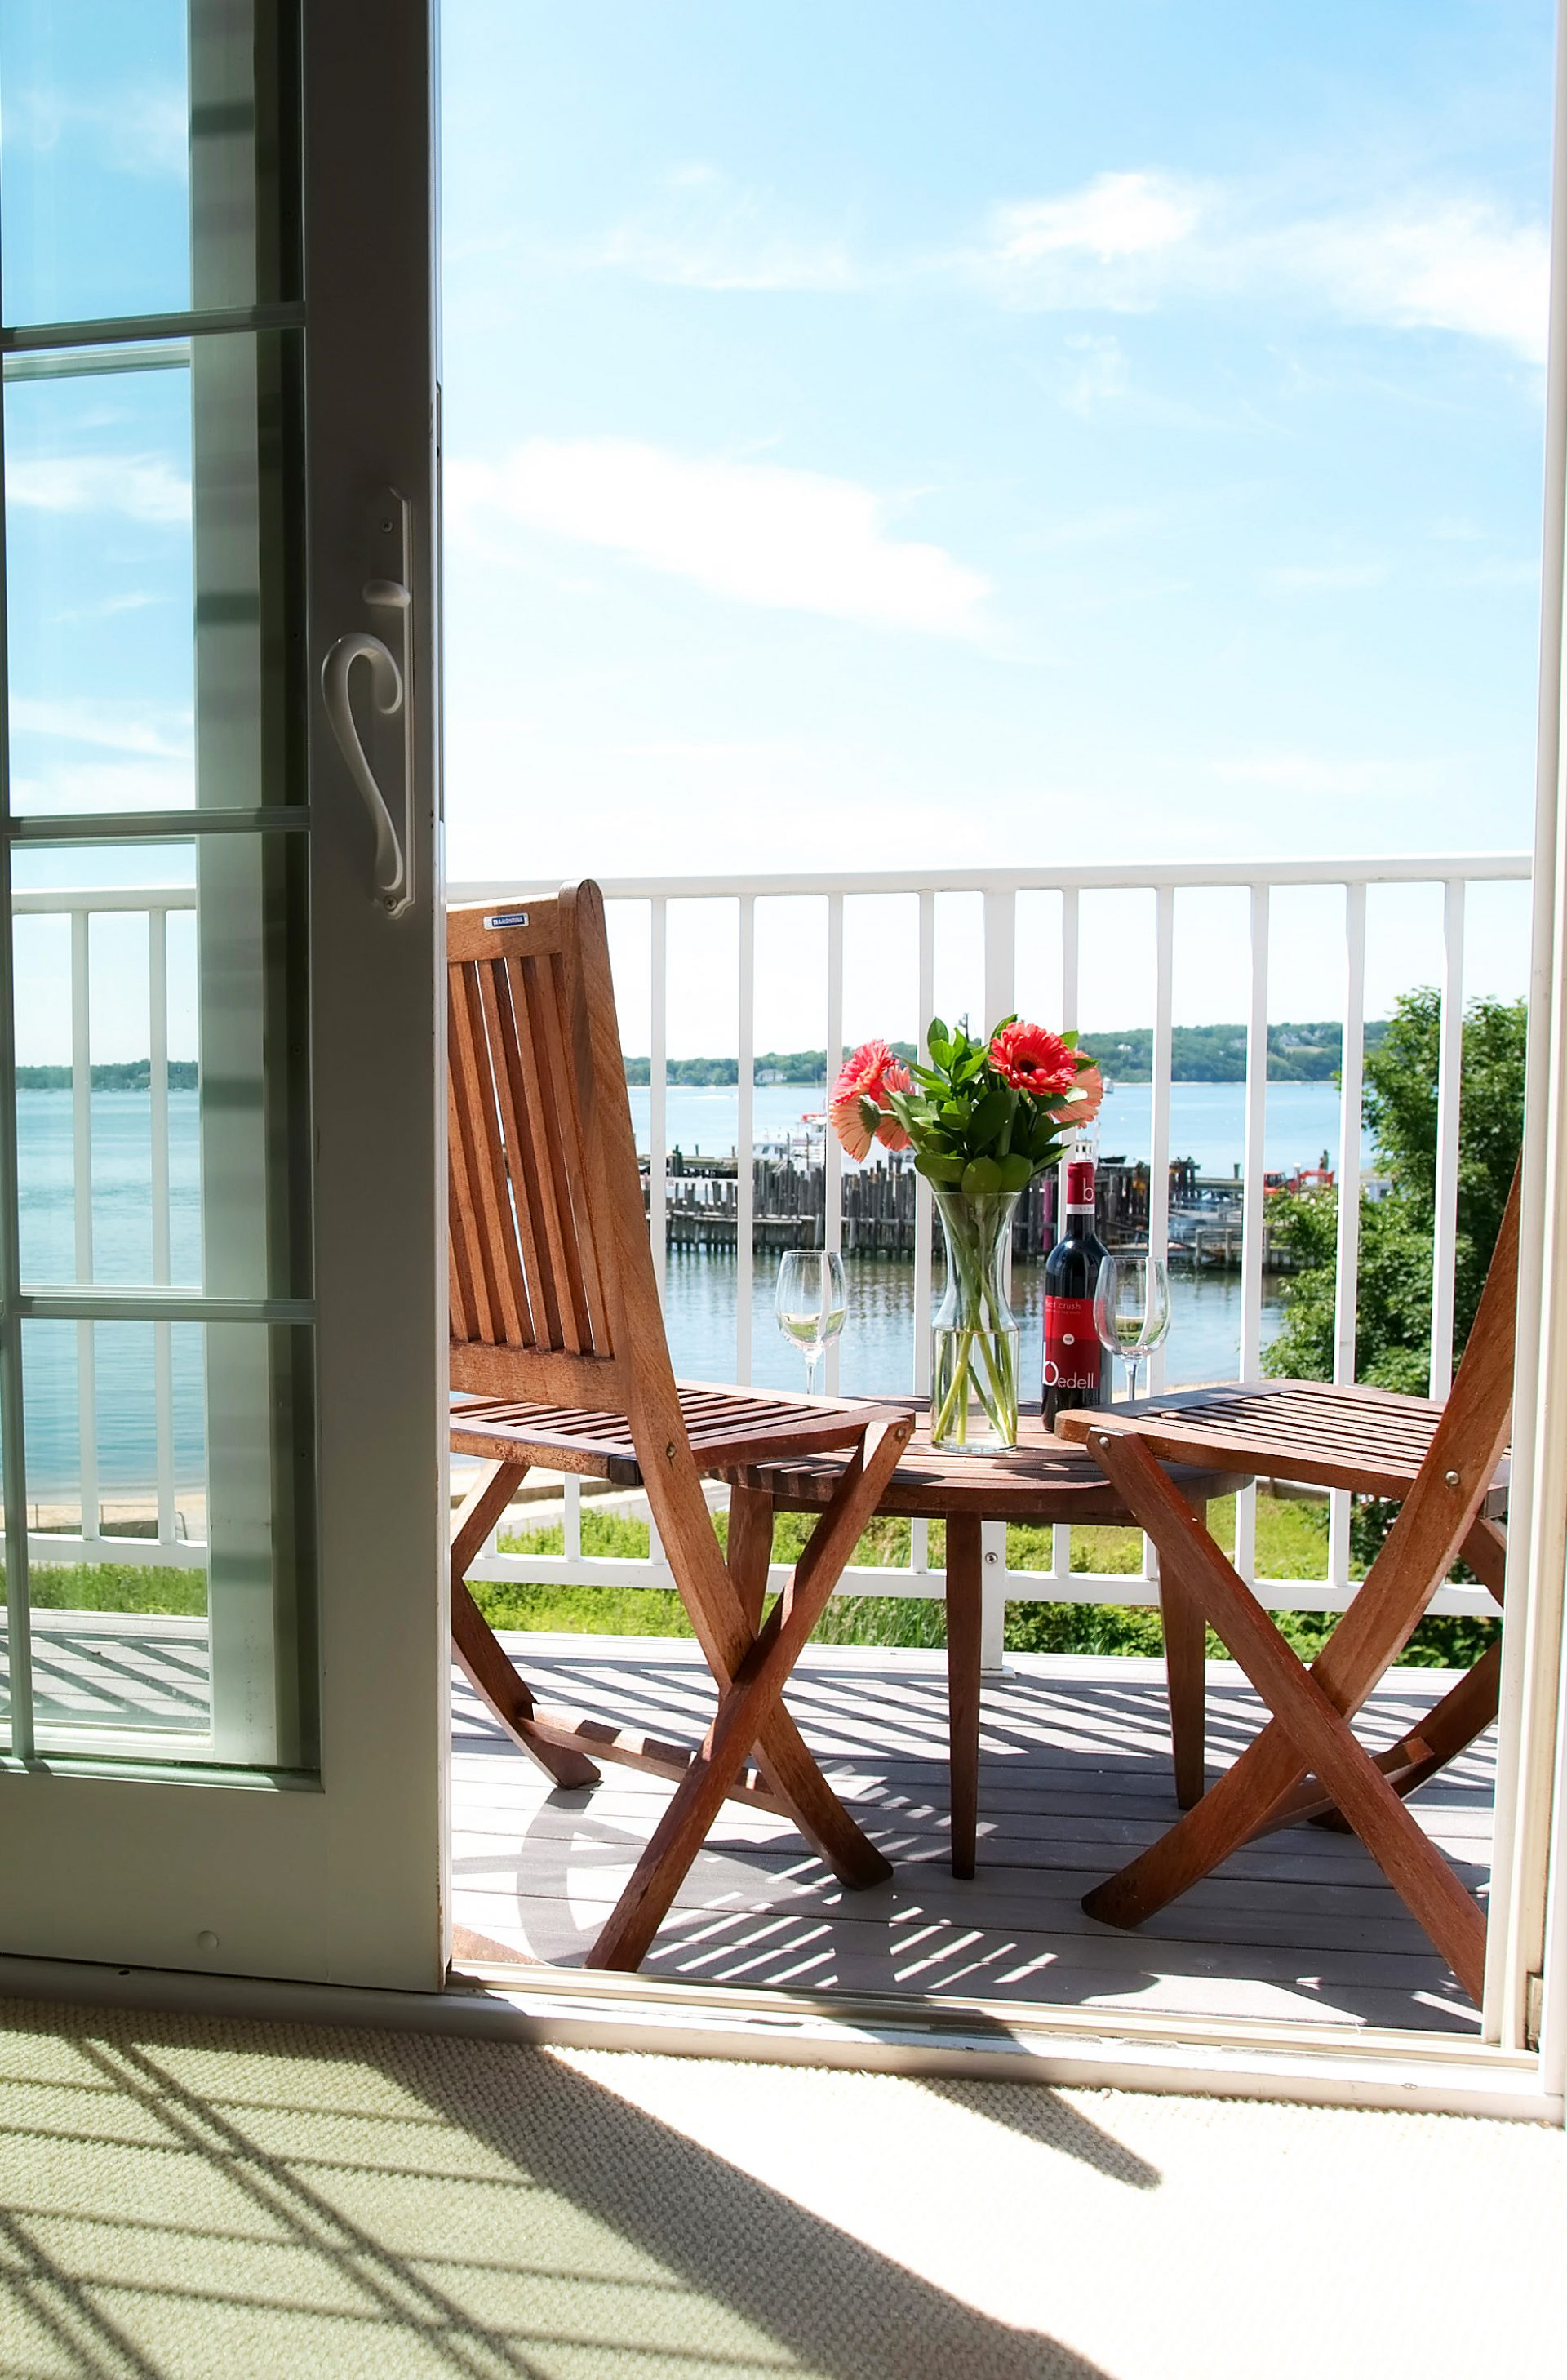 Head Down to The Harborfront Inn for the Perfect Summer Getaway!